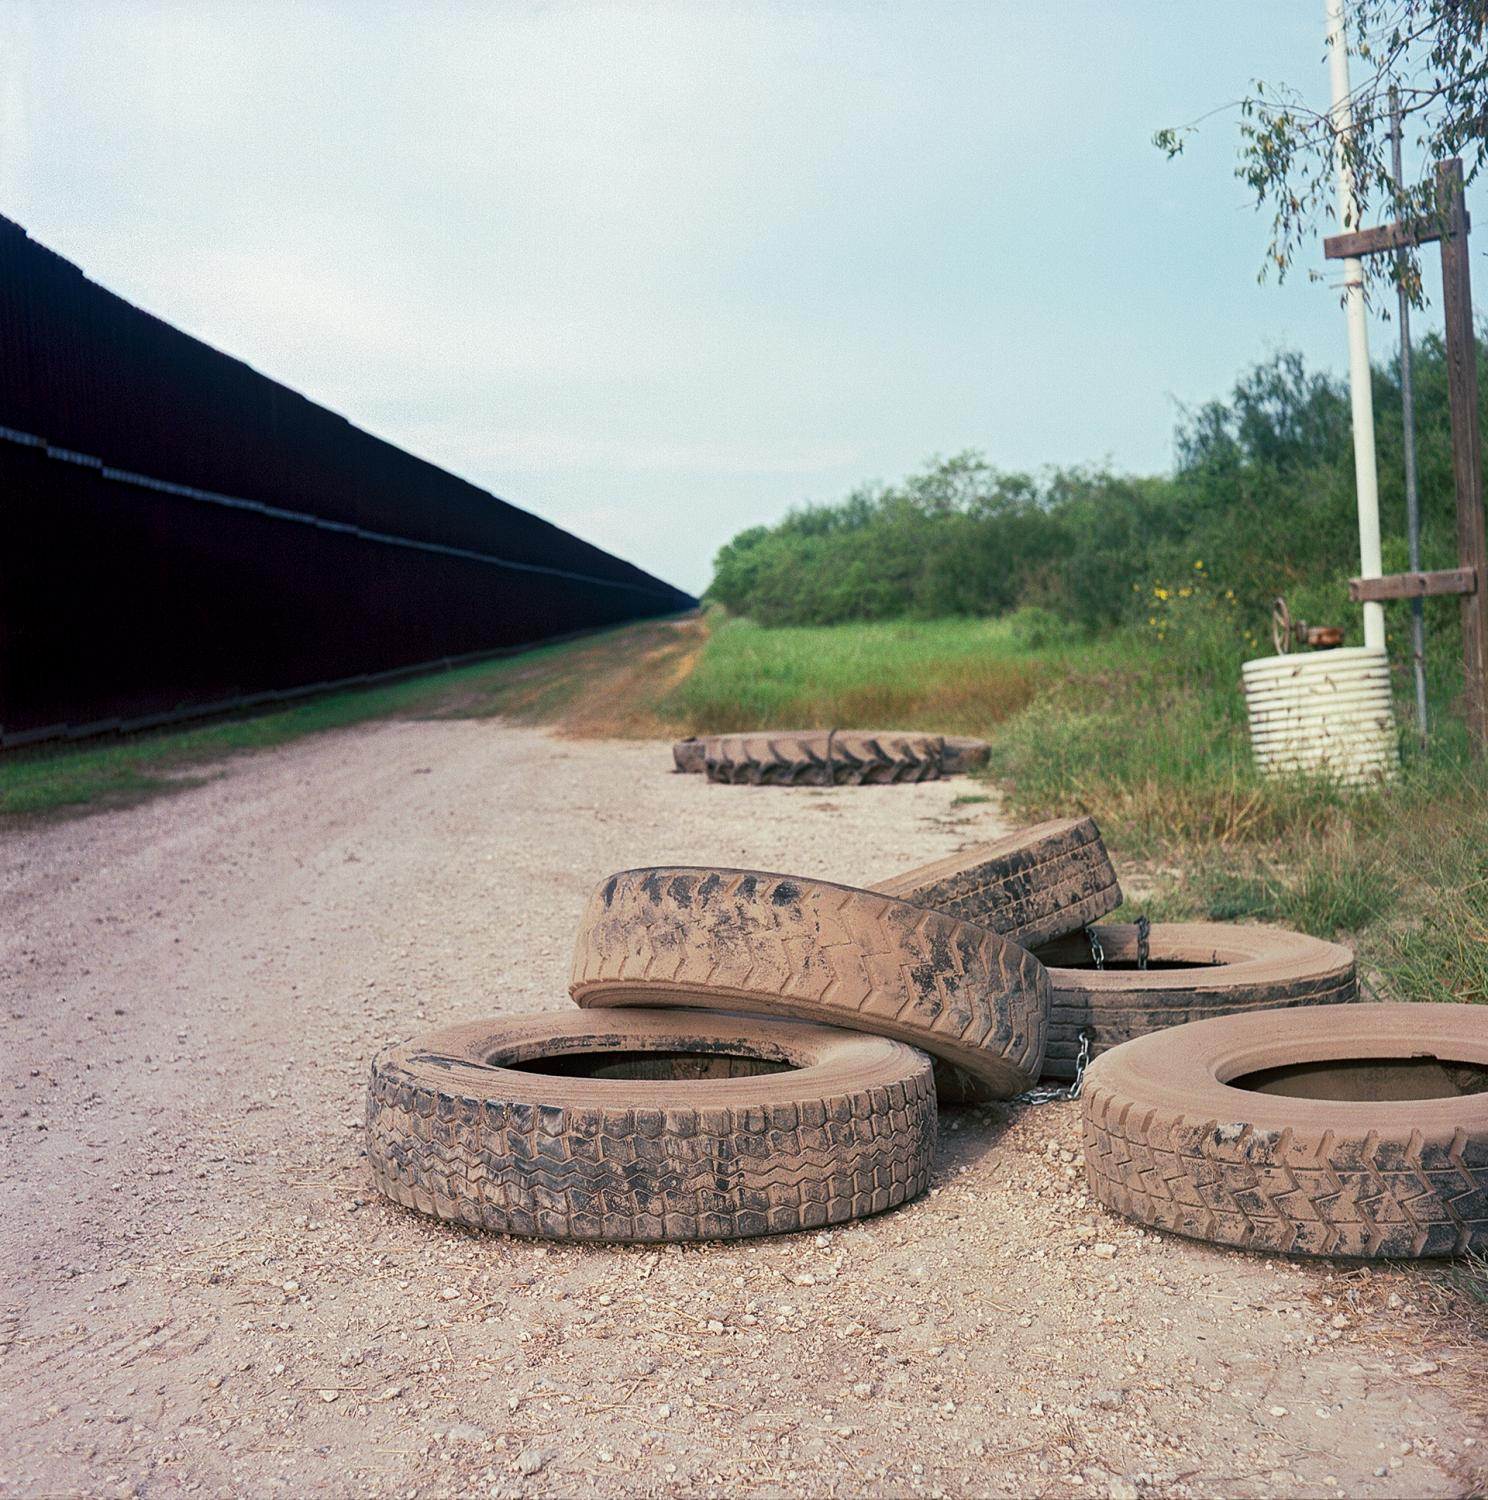 Brownsville, TX - OCTOBER 16, 2020: Old tires at the U.S.-Mexico border fence. Border agents hitch old tires to the backs of their patrol units, dragging them across dirt roads paralleling the border, in order to clear footprints to determine a timeline of crossings.